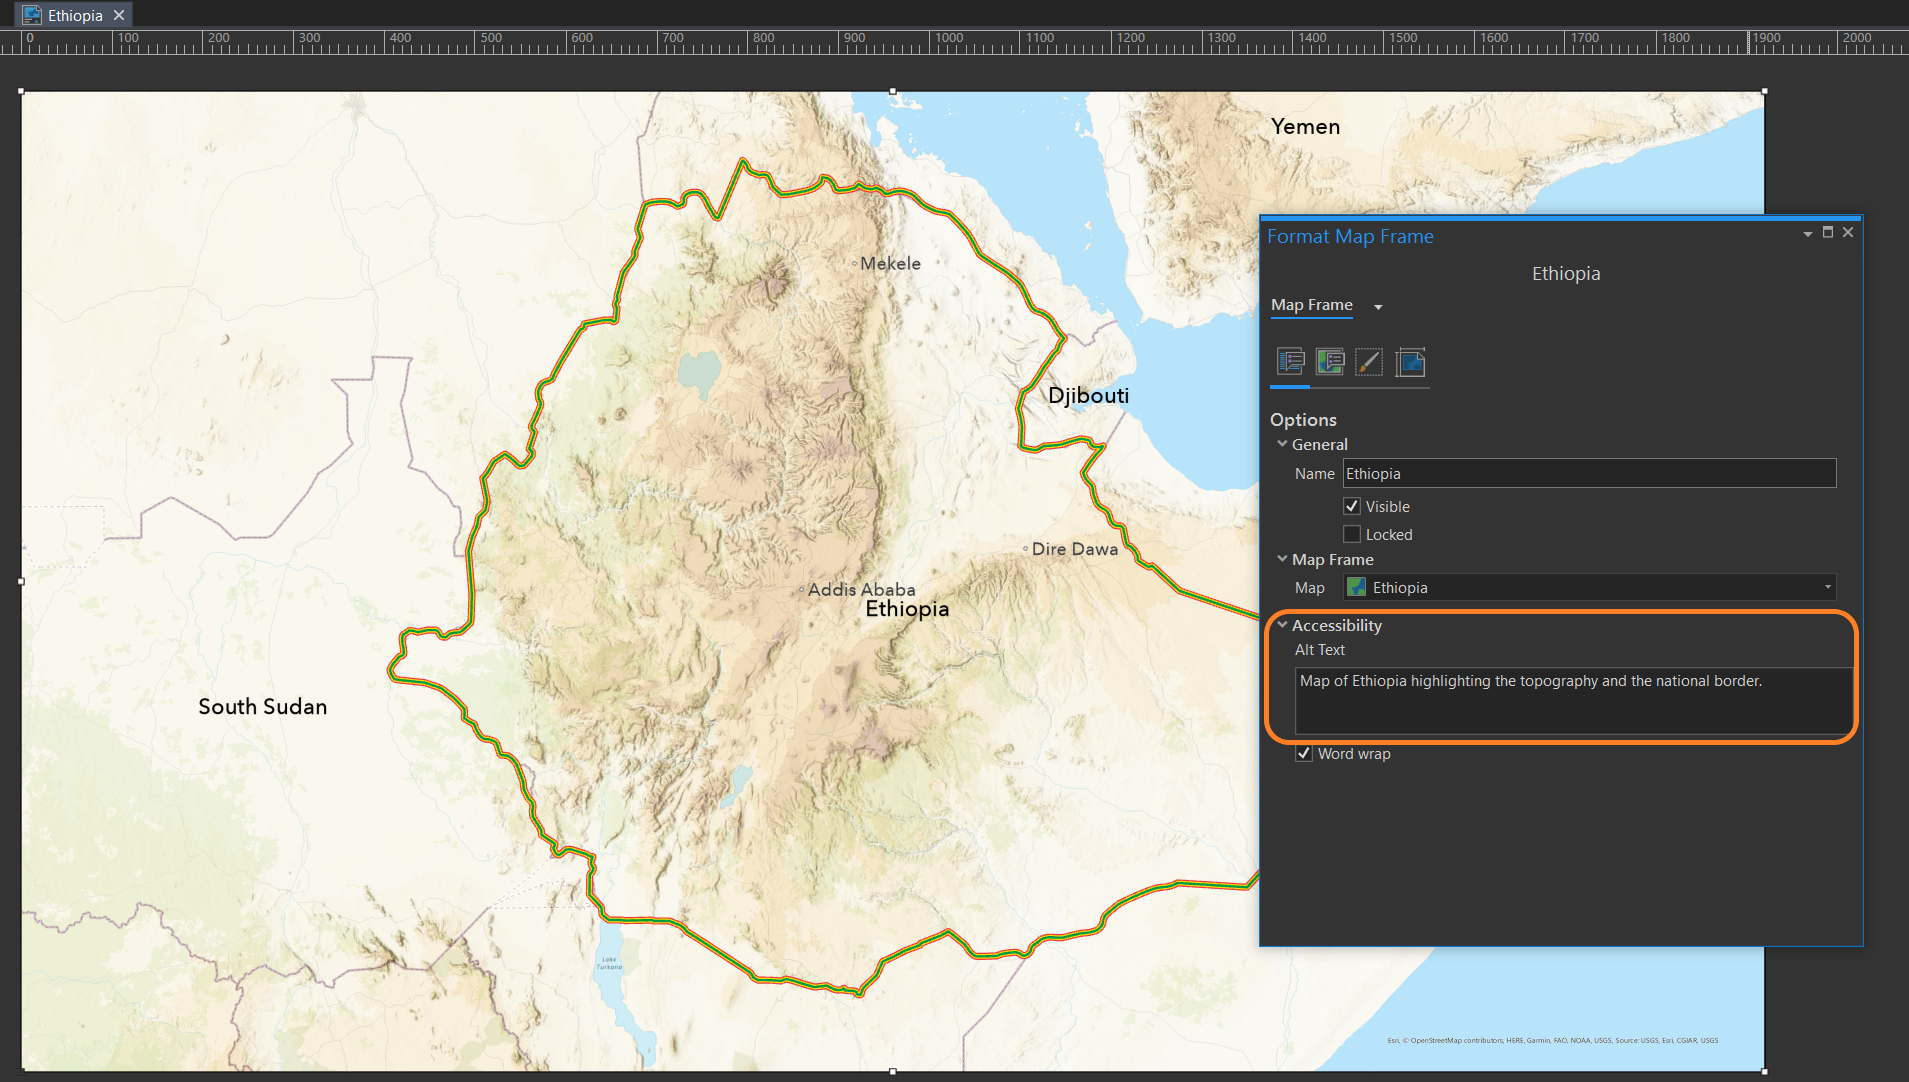 Adding Alt Text to a map frame in an ArcGIS Pro Layout